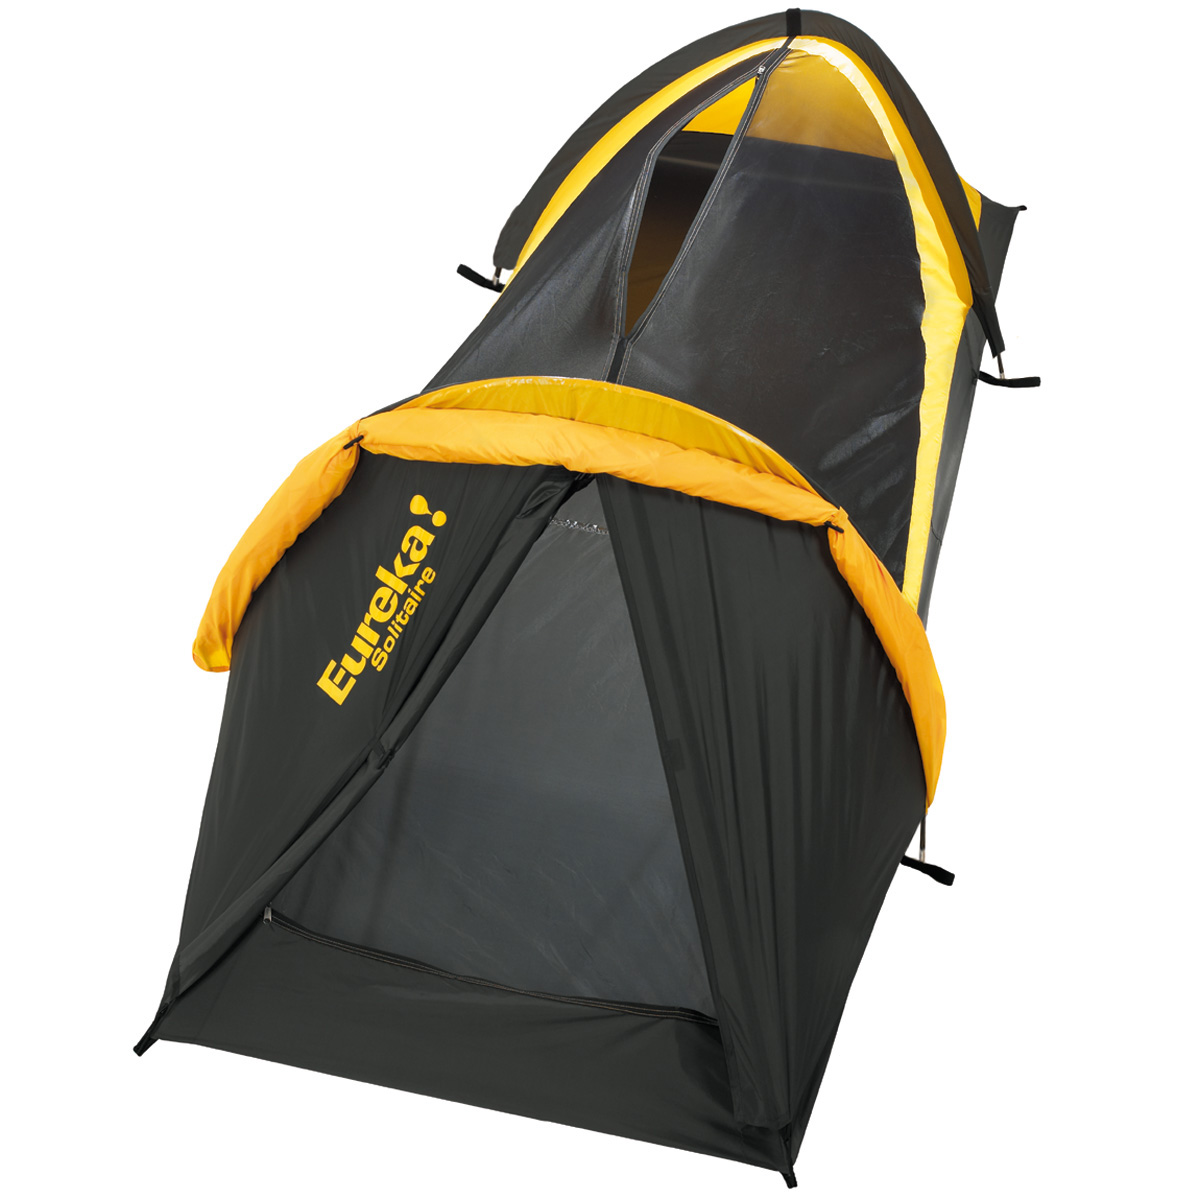 Solitaire 1 Person Tent  sc 1 st  Tents | Eureka! - Johnson Outdoors & Solitaire 1 Person Tent | Eureka!